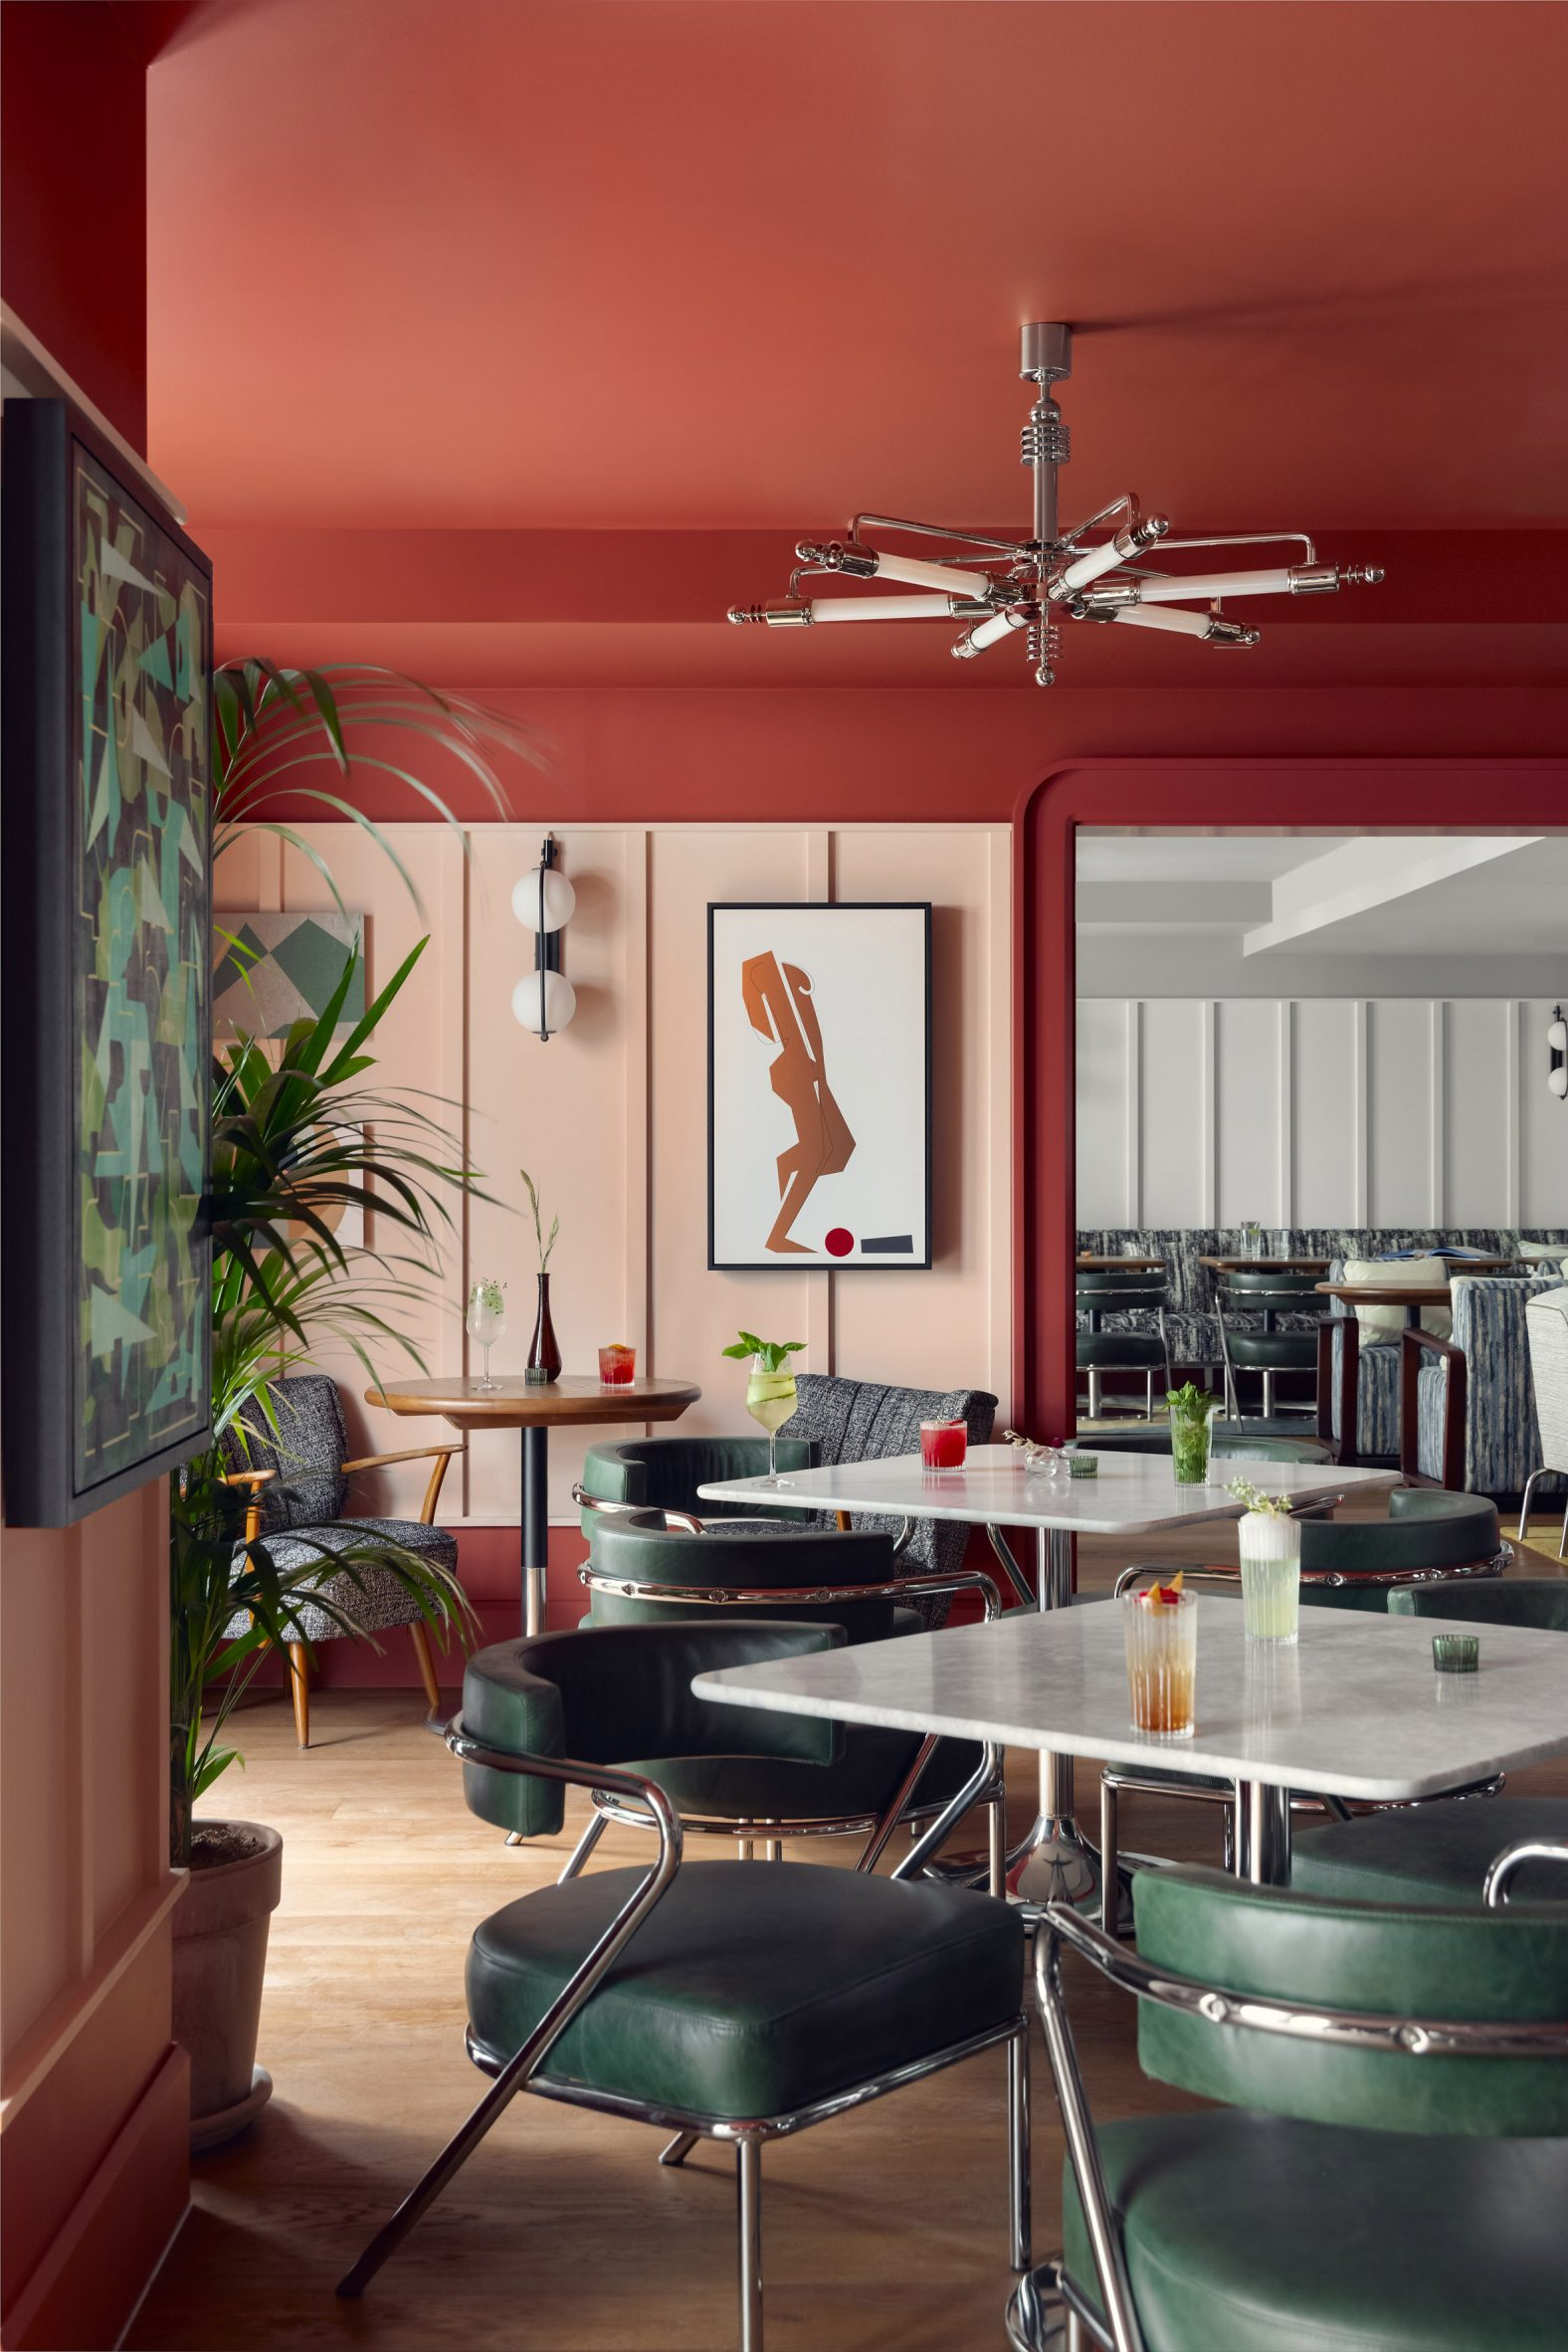 Restaurant of Schwan Locke hotel with red walls, green leather chairs and marble tables